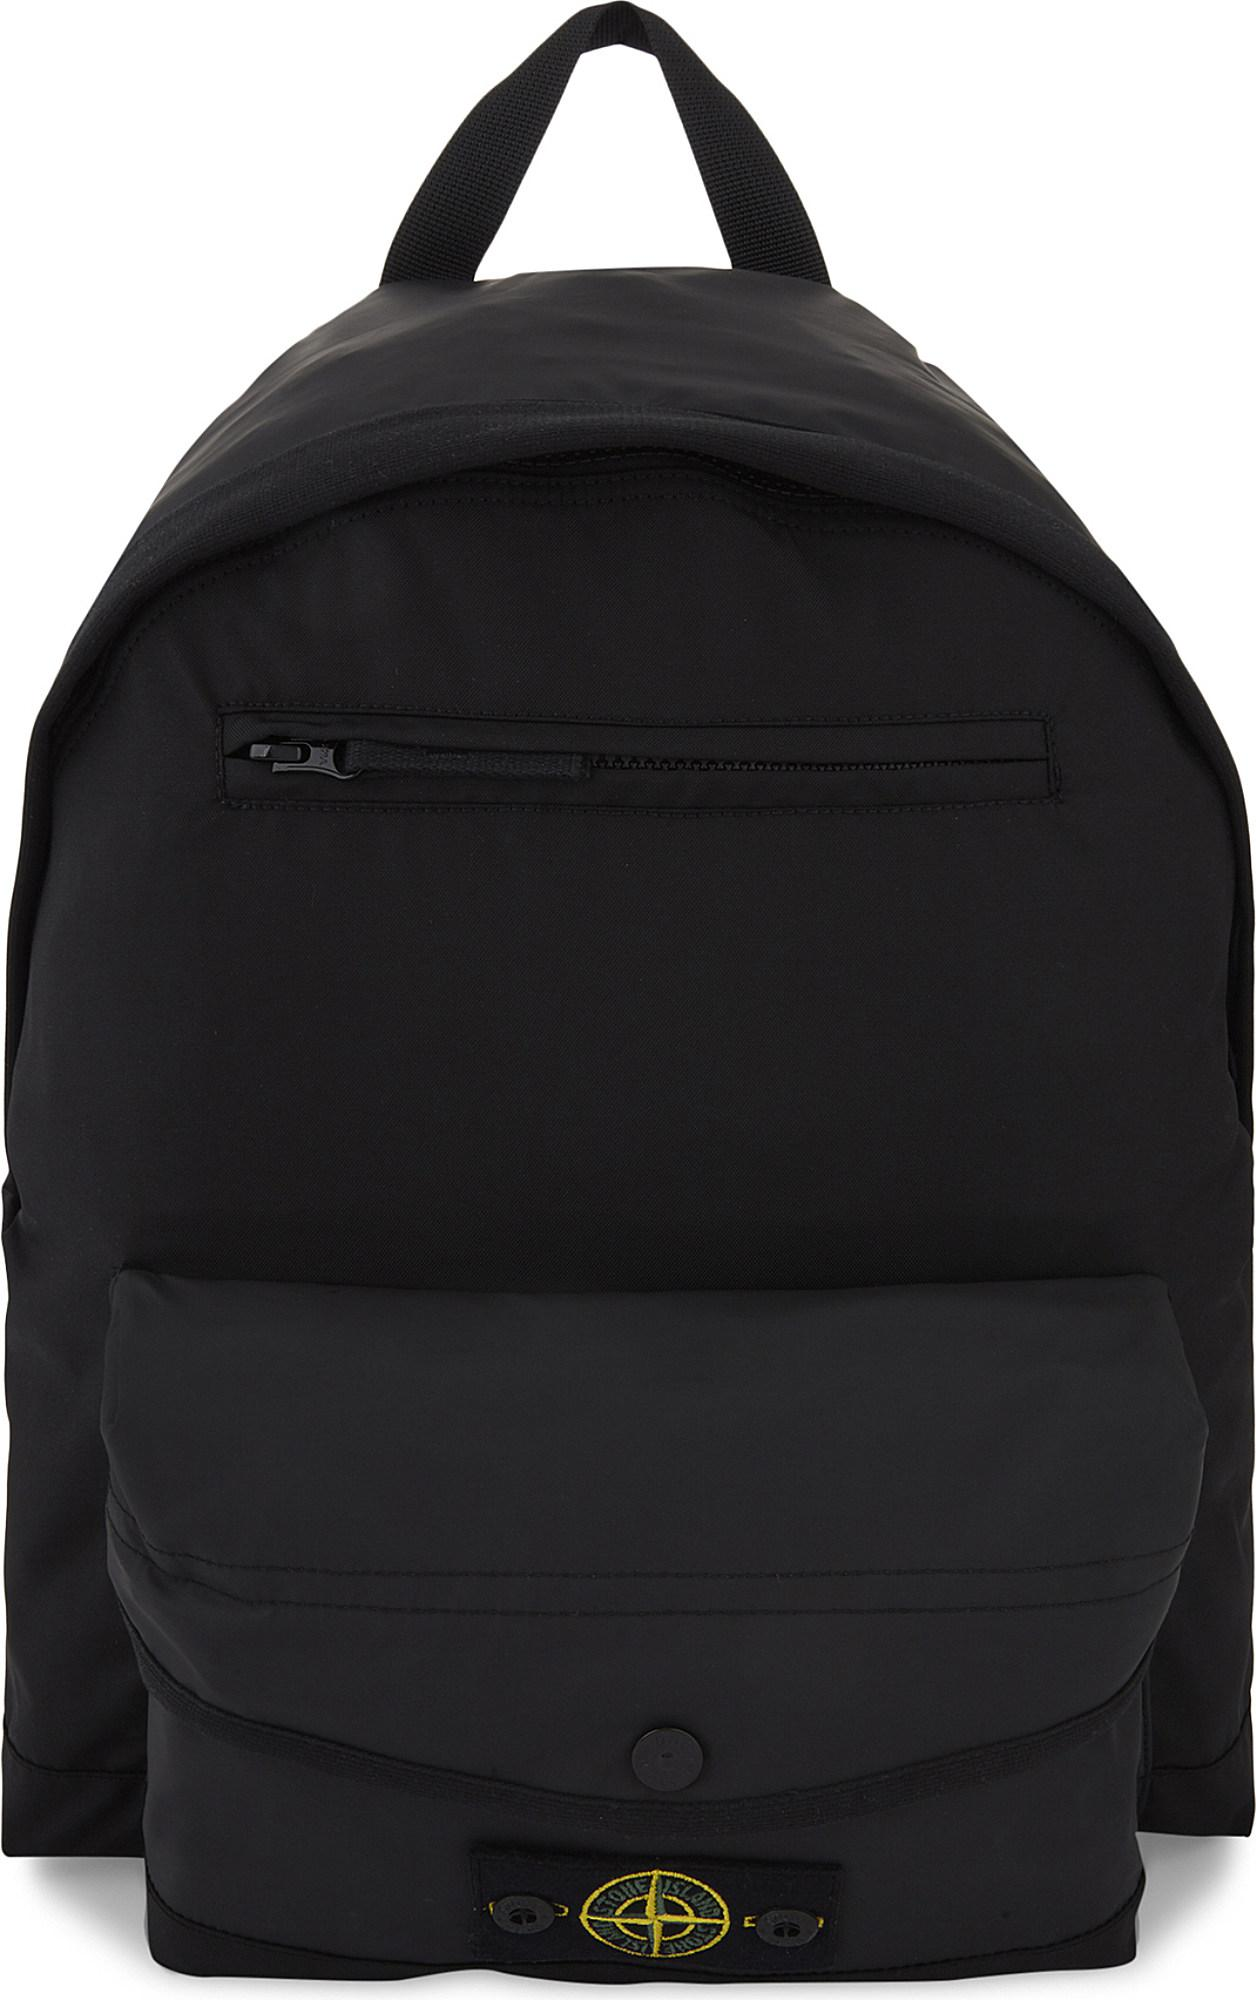 ... Backpack in Black - Lyst low priced a2e7c fe3e5  TIBA + MARL Elwood  backpack san francisco b7330 c2f18  EMPORIO ARMANI Embossed logo leather  holdall ... 60cc6f9d87f3e